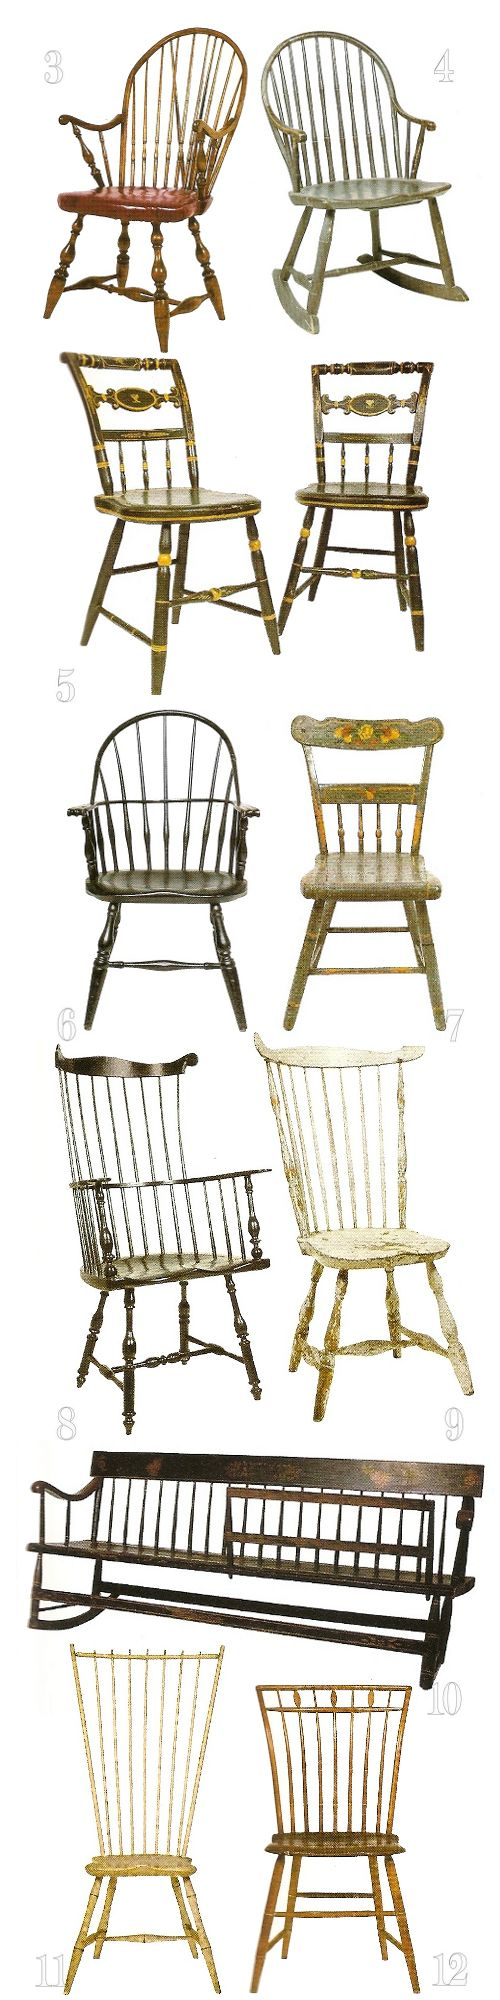 Windsor Chairs And Bench Identification - 54 Best Design Identification Guides Images On Pinterest